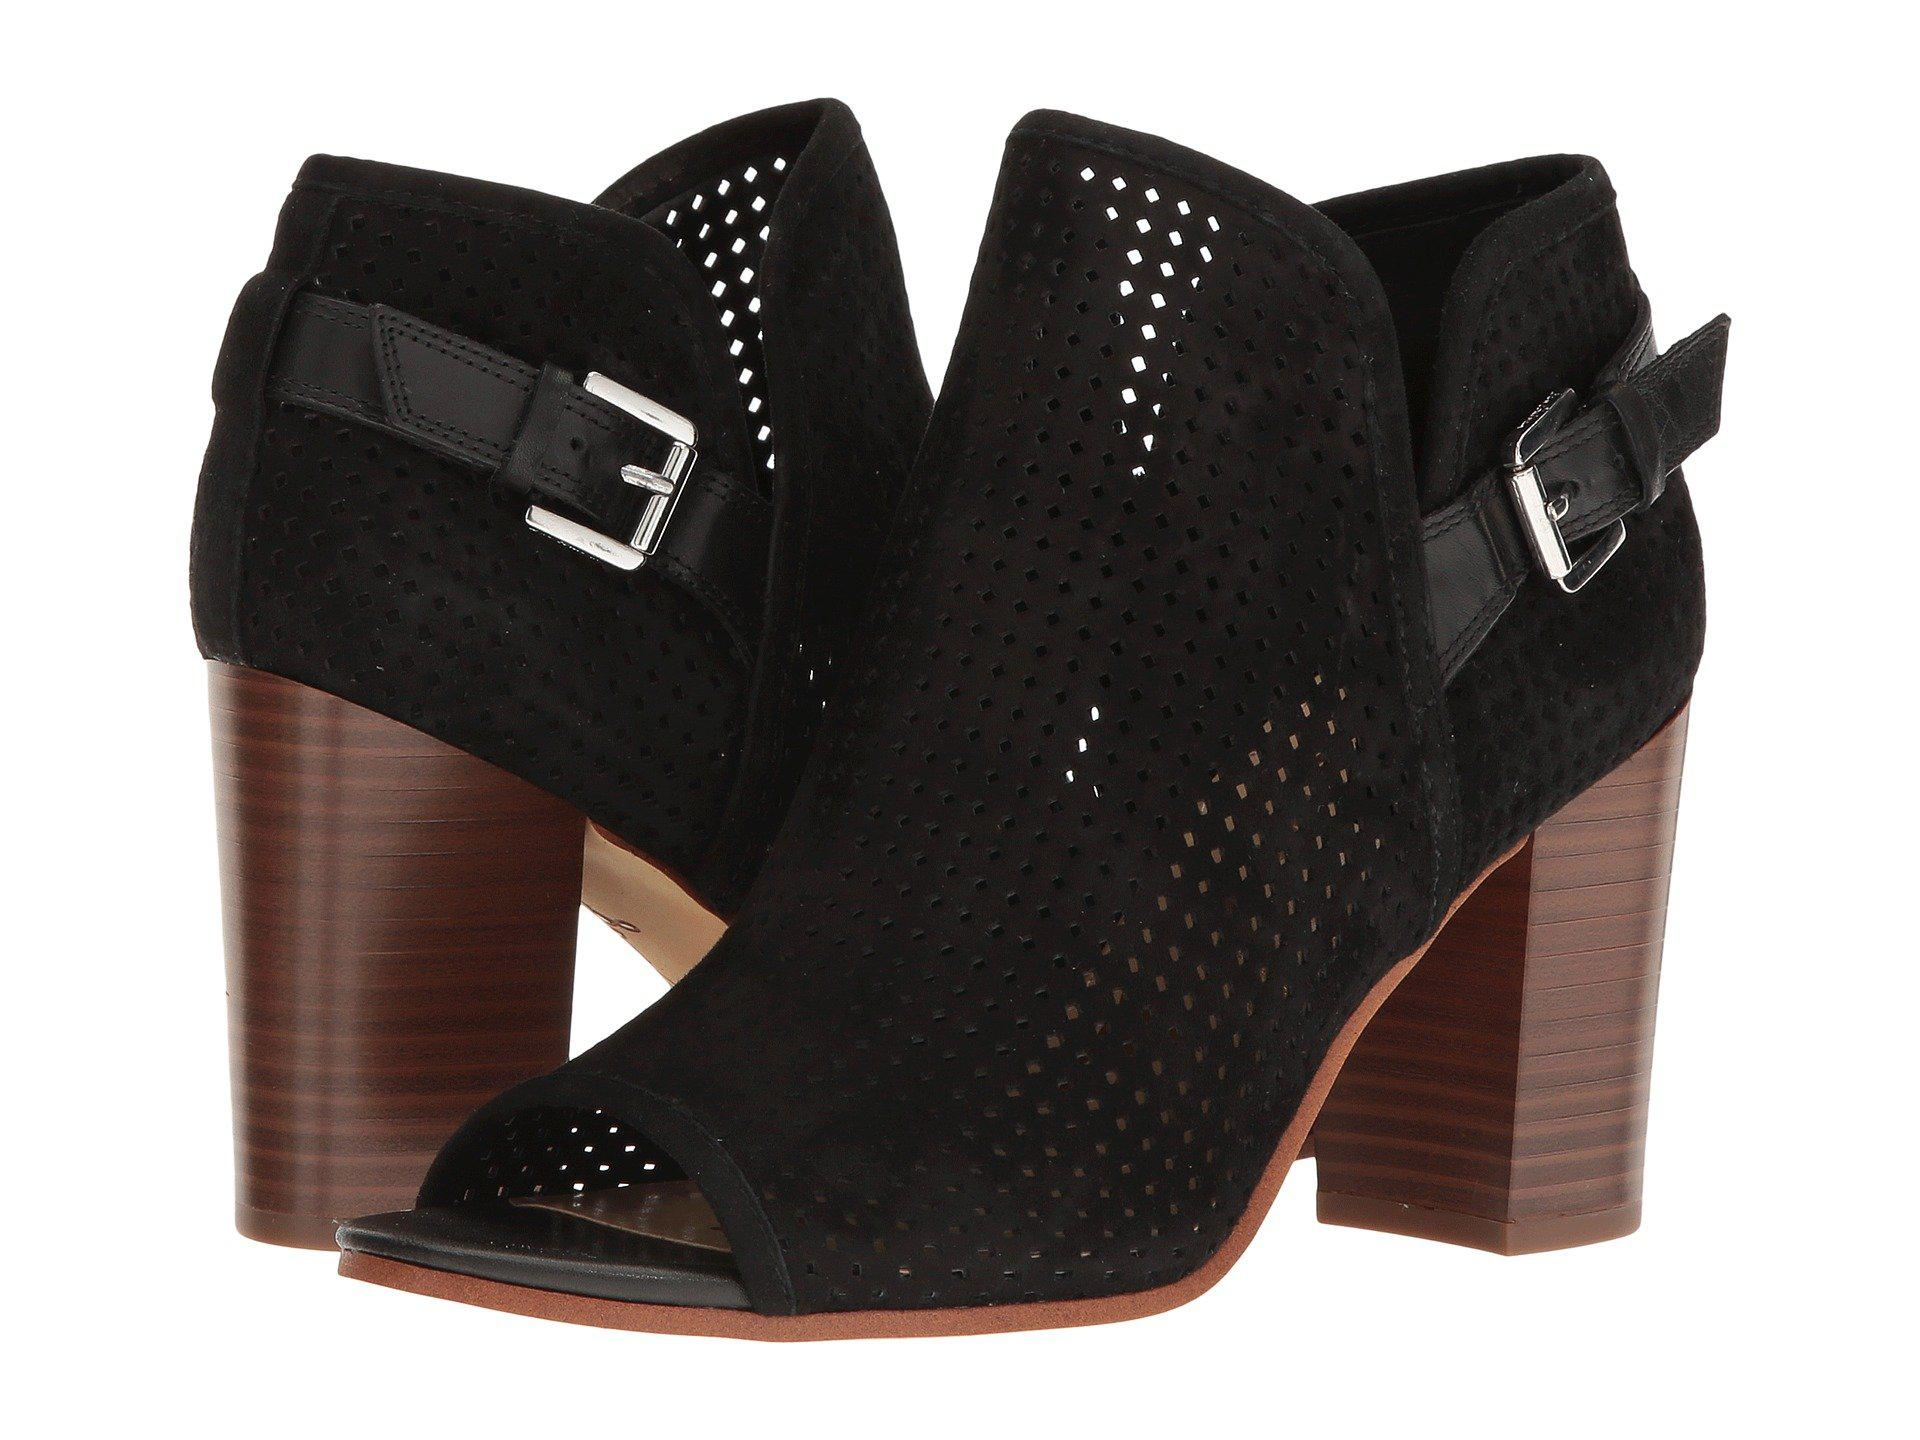 a5b146d593c5 Lyst - Sam Edelman Easton Perforated Open Toe Bootie in Black